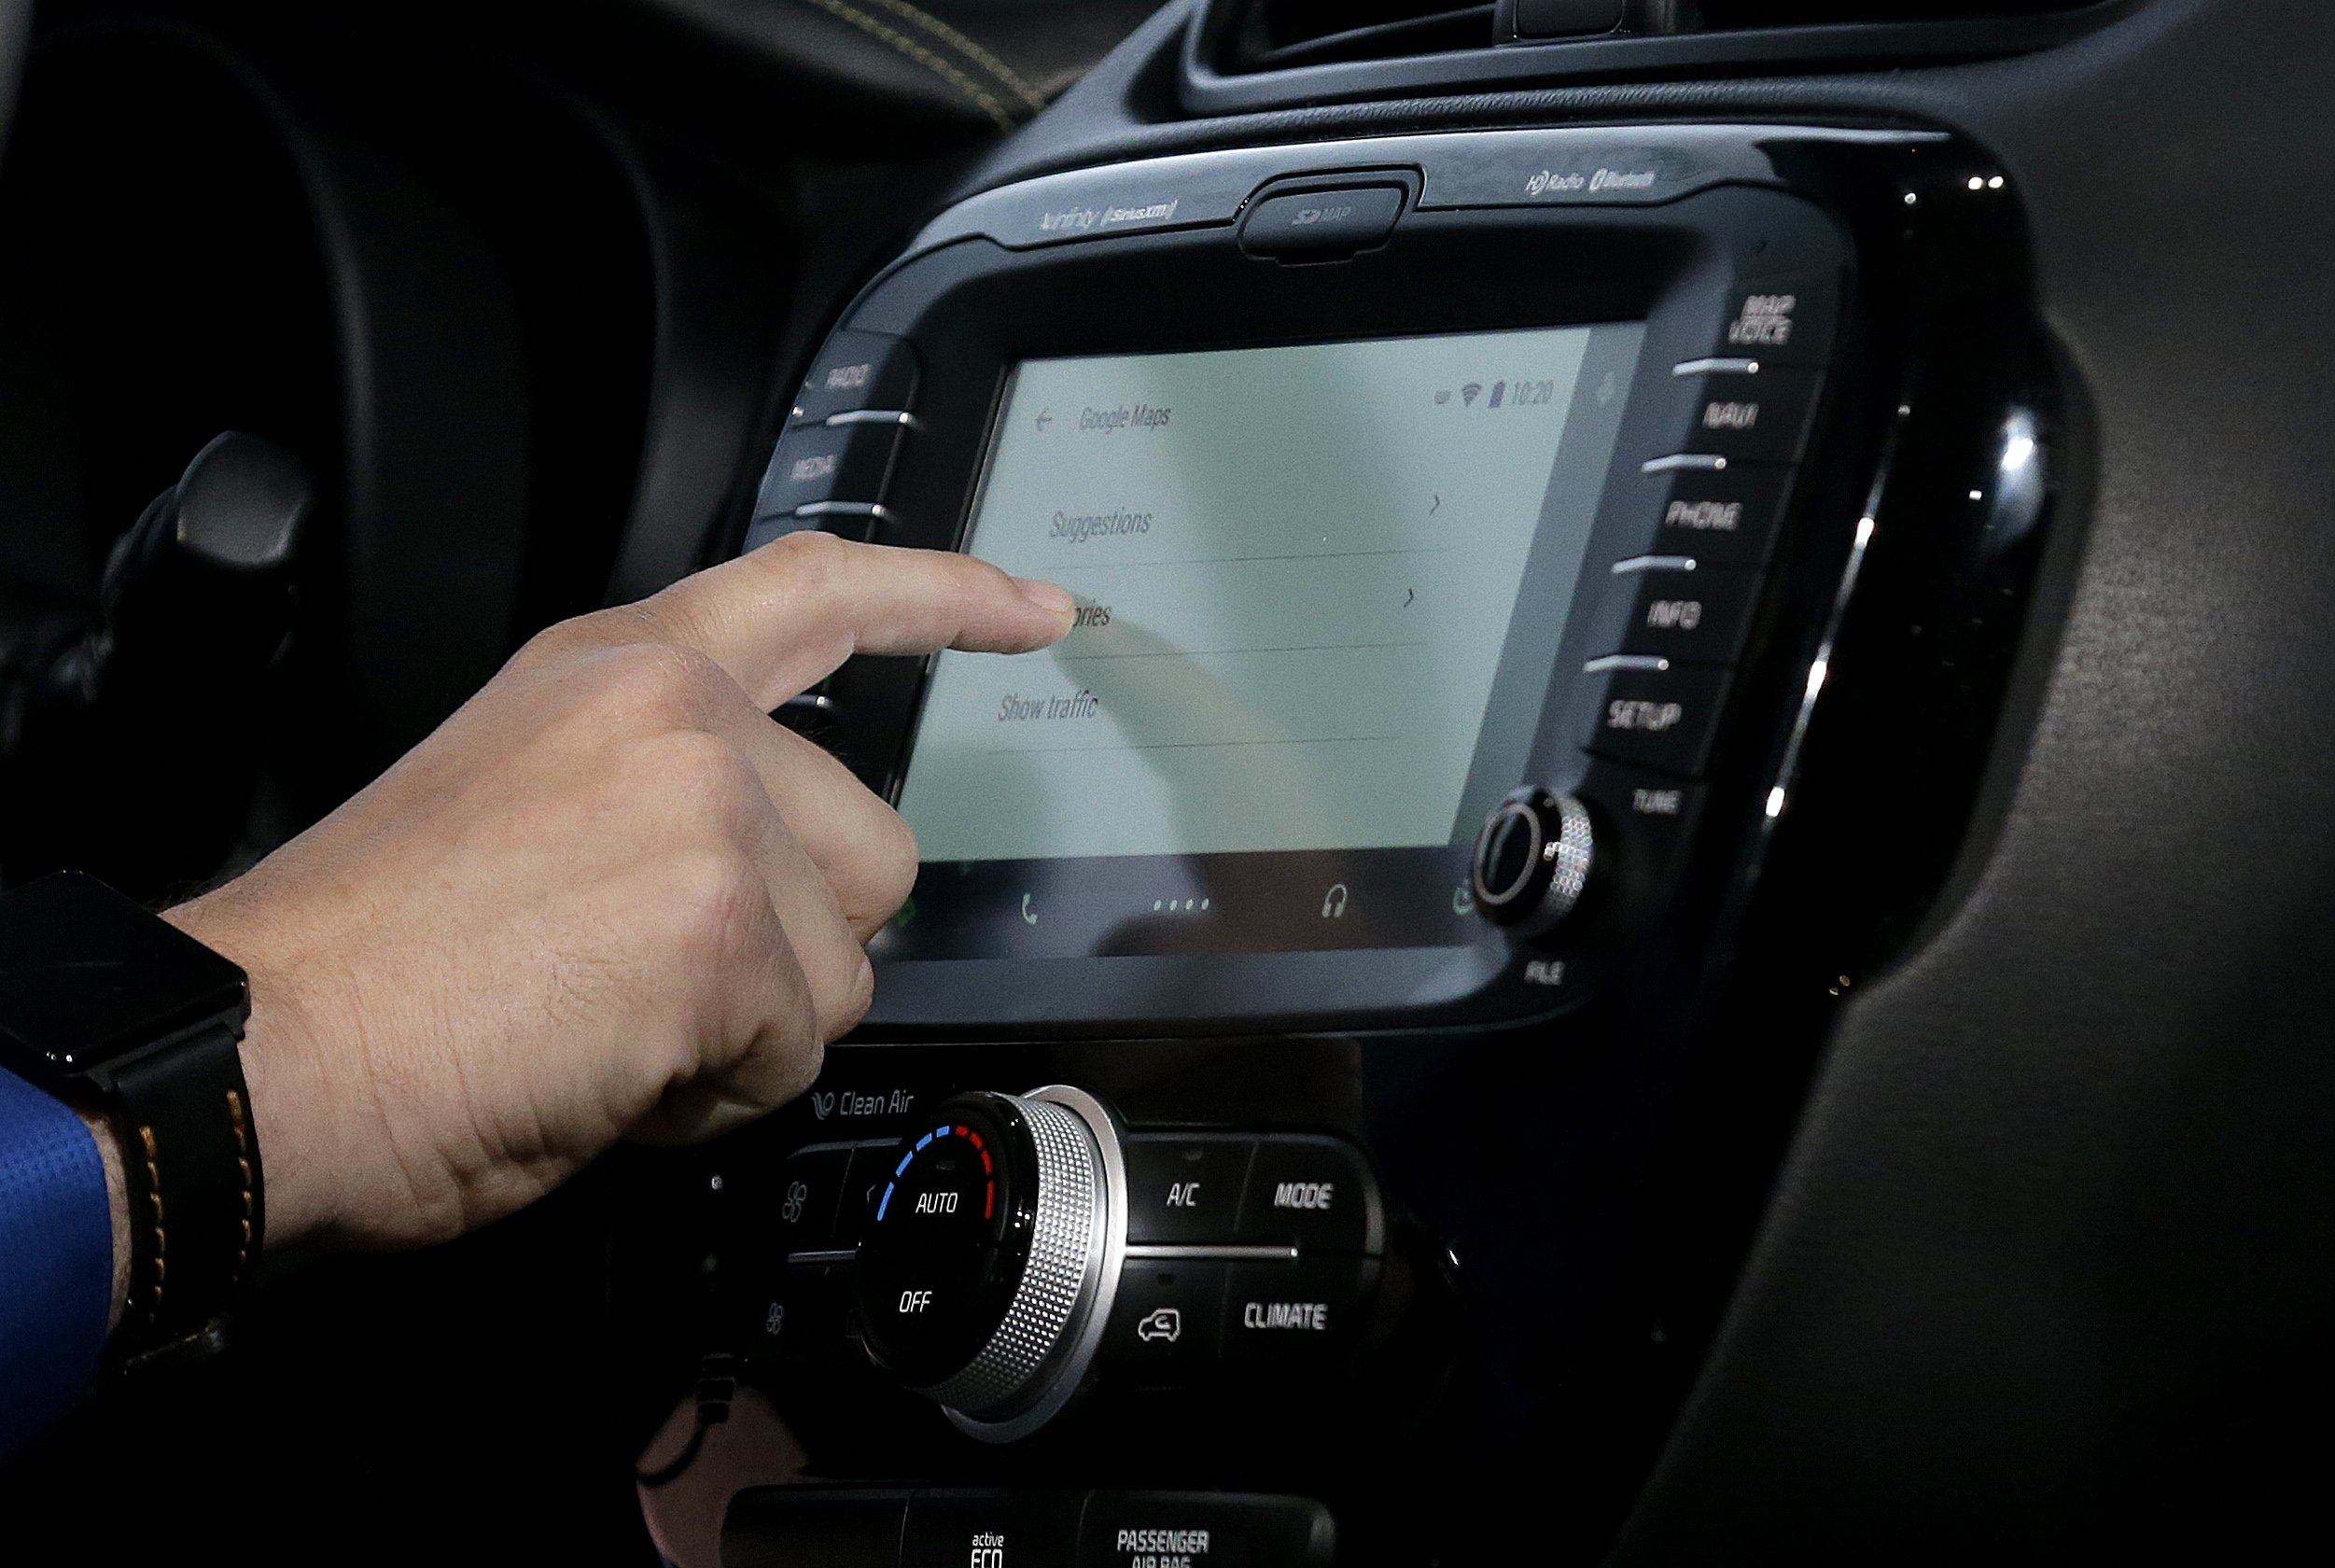 A demonstration of Android Auto is given during the Google I/O 2014 keynote presentation in San Francisco on June 25, 2014.